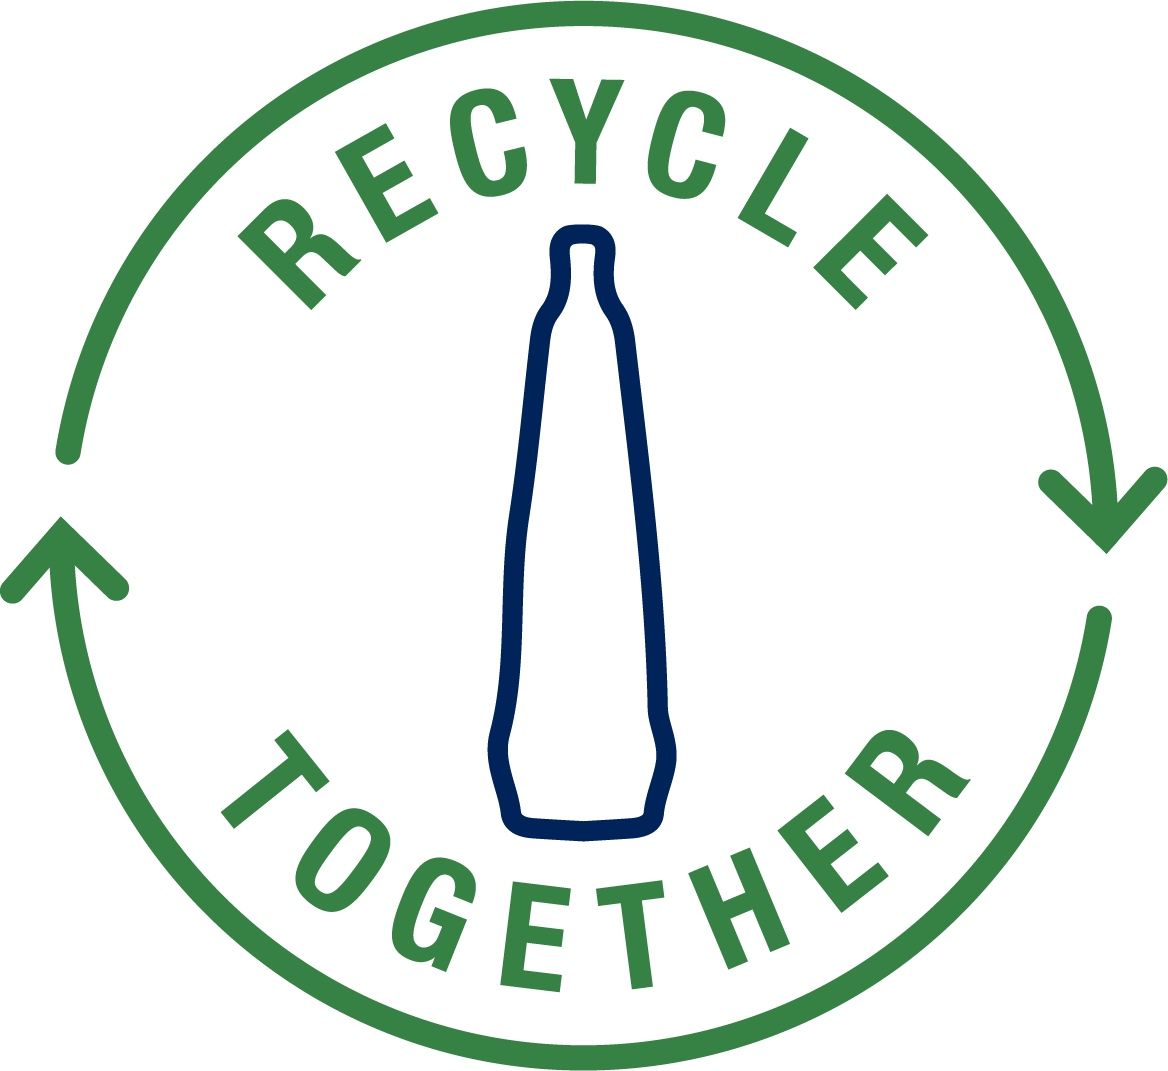 Recycle together